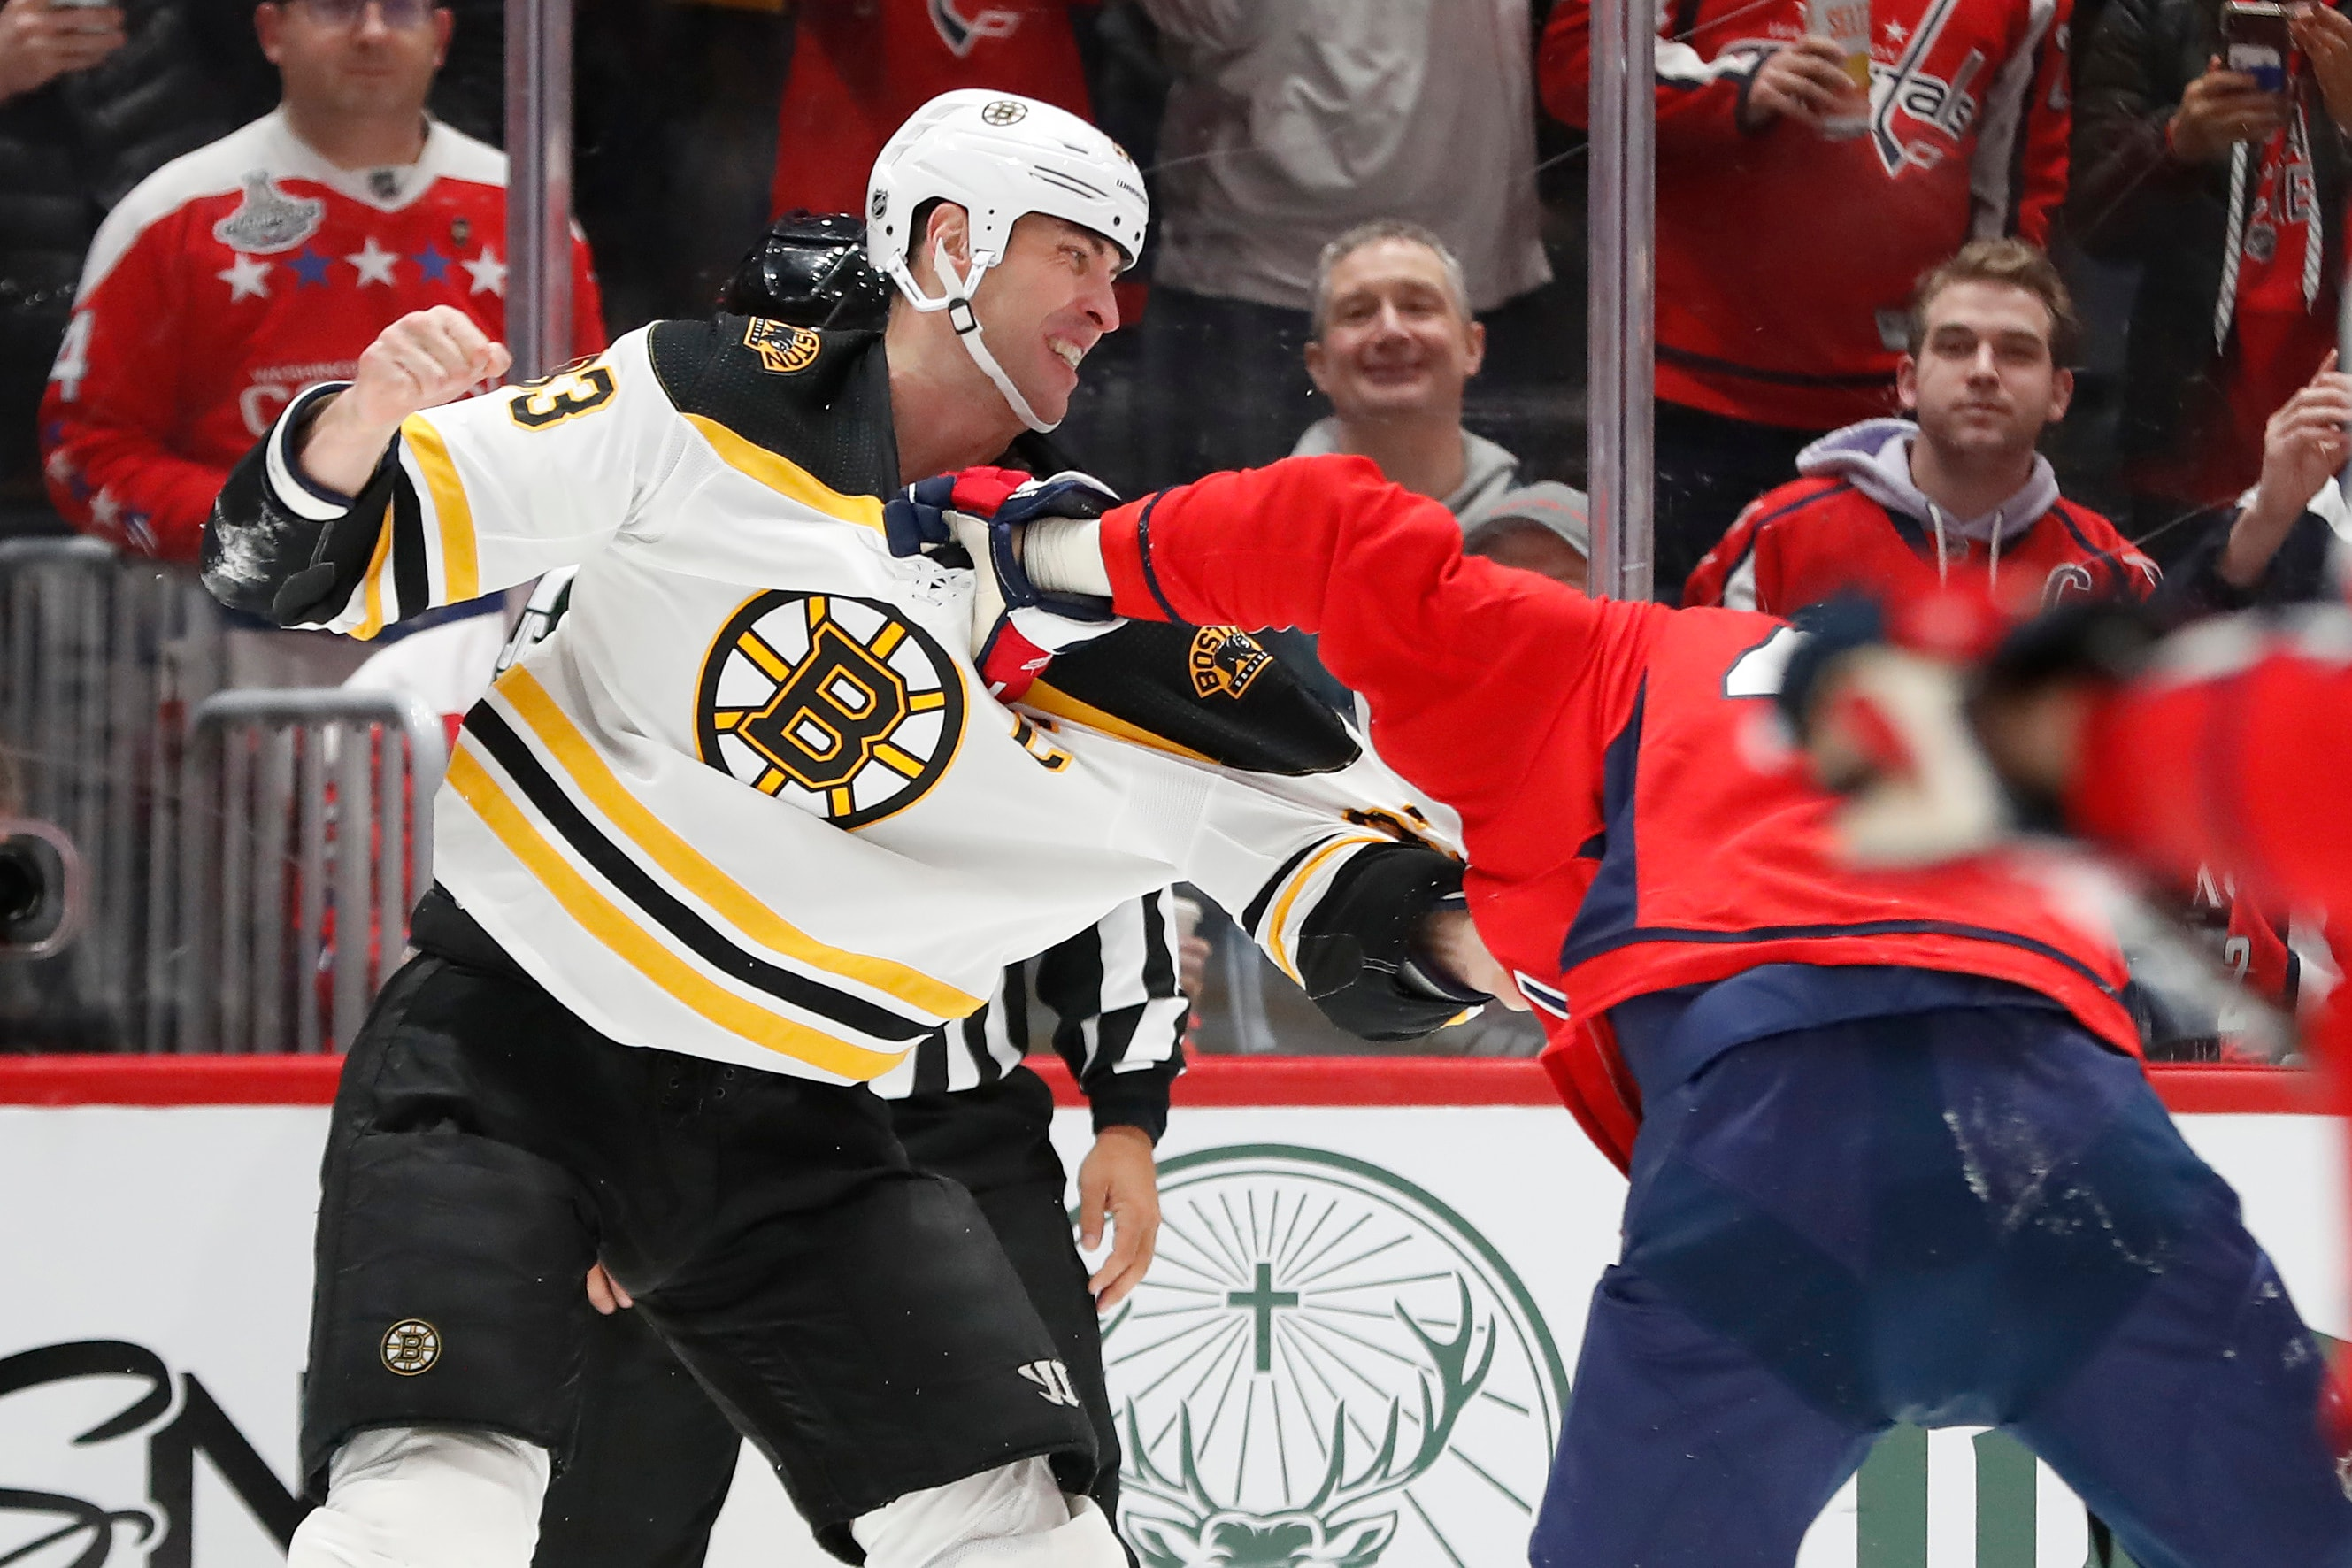 Even in loss, Bruins show signs of trending upwards